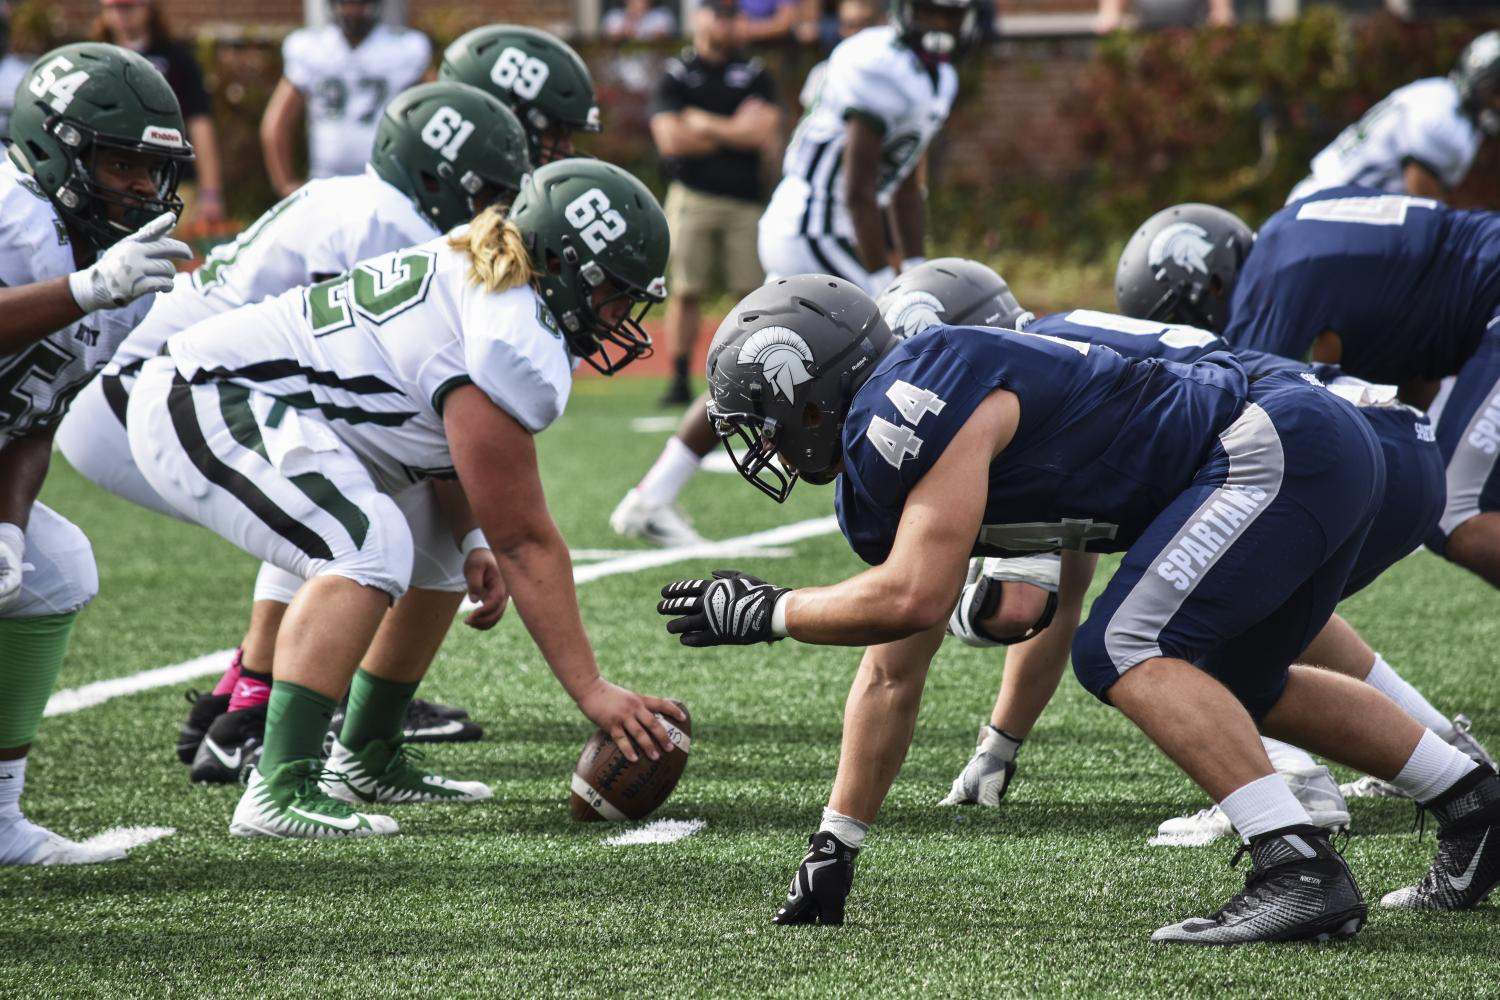 CWRU defensive linemen await the snap from Bethany